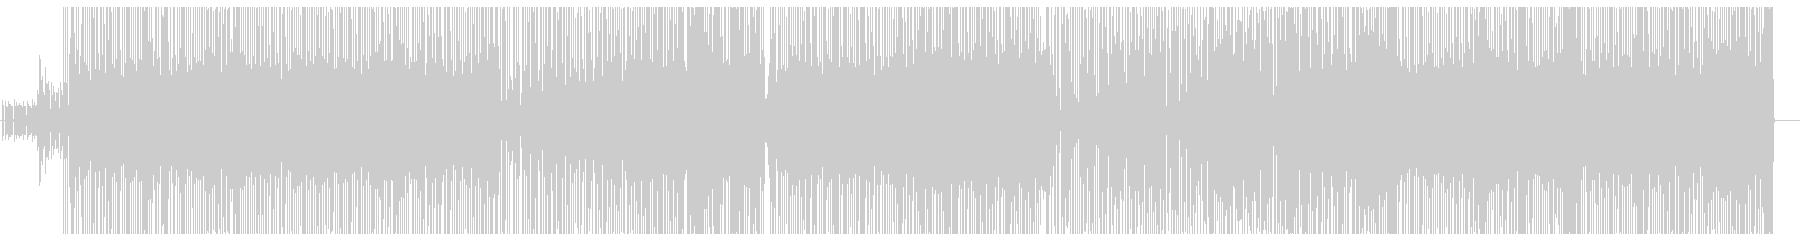 Funky number of the theme of the pick-up man's unreproduced waveform